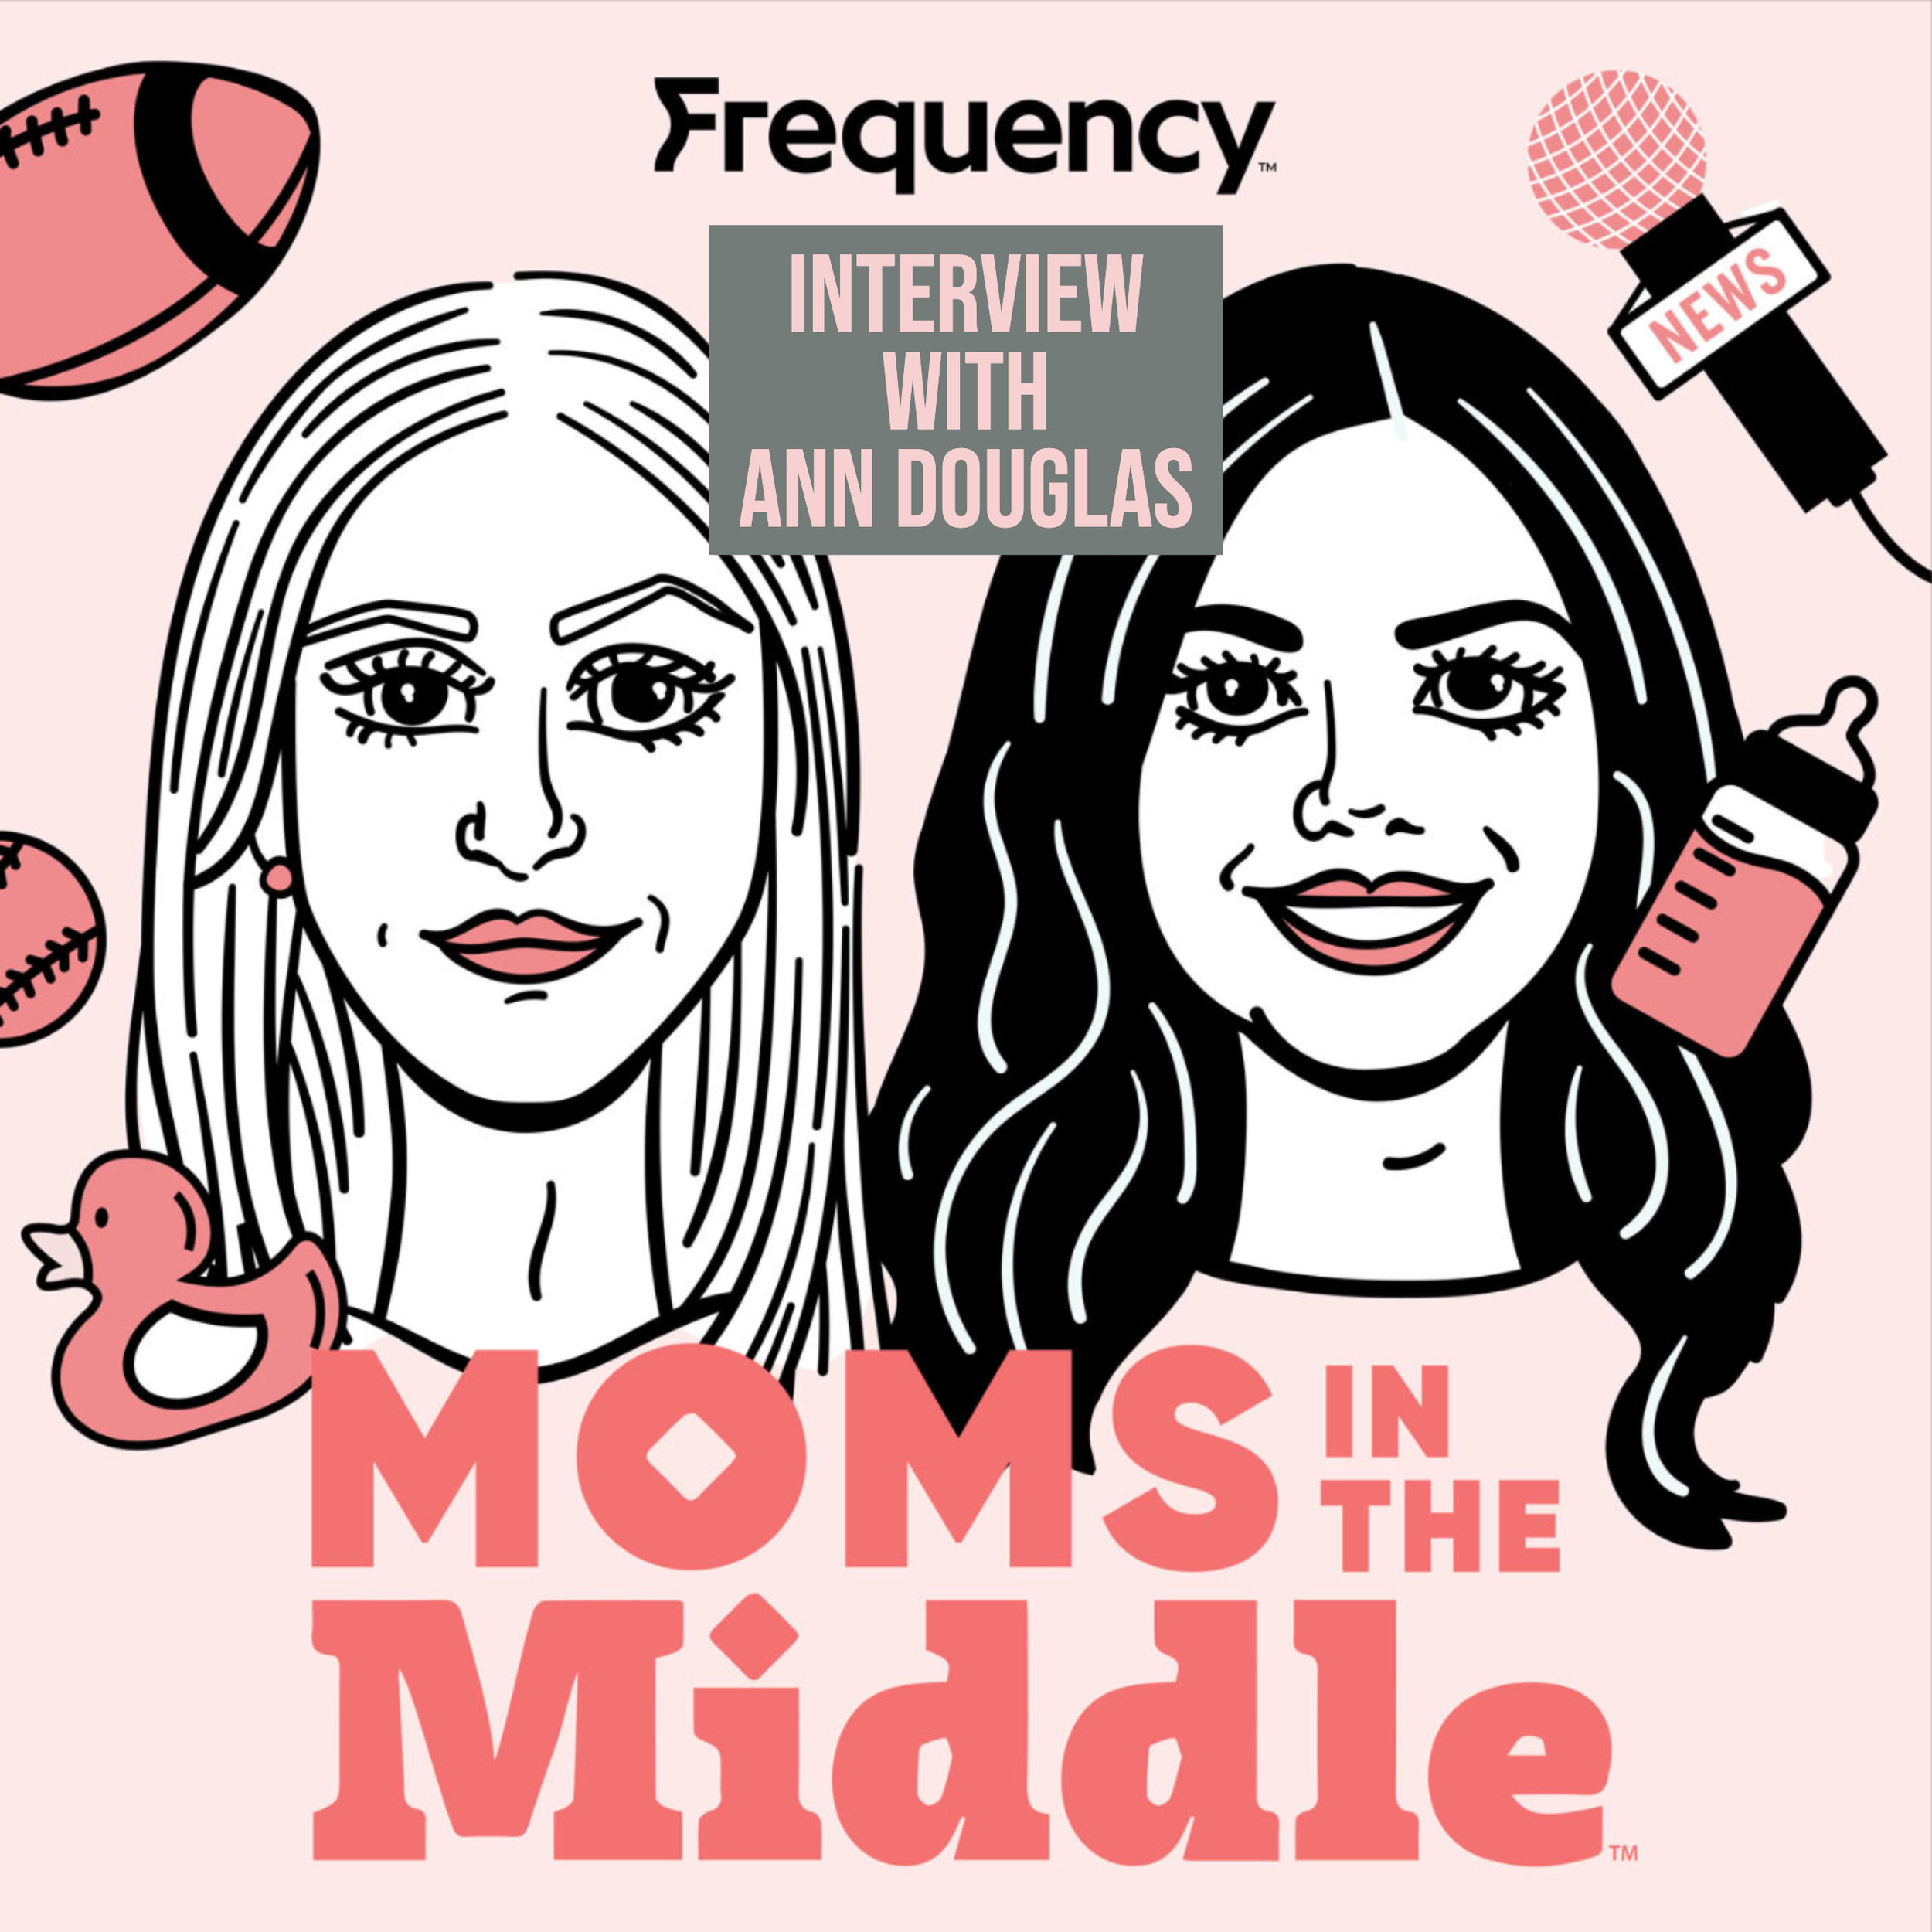 Ann Douglas was a guest on the June 11, 2019, episode of the Moms in the Middle podcast.